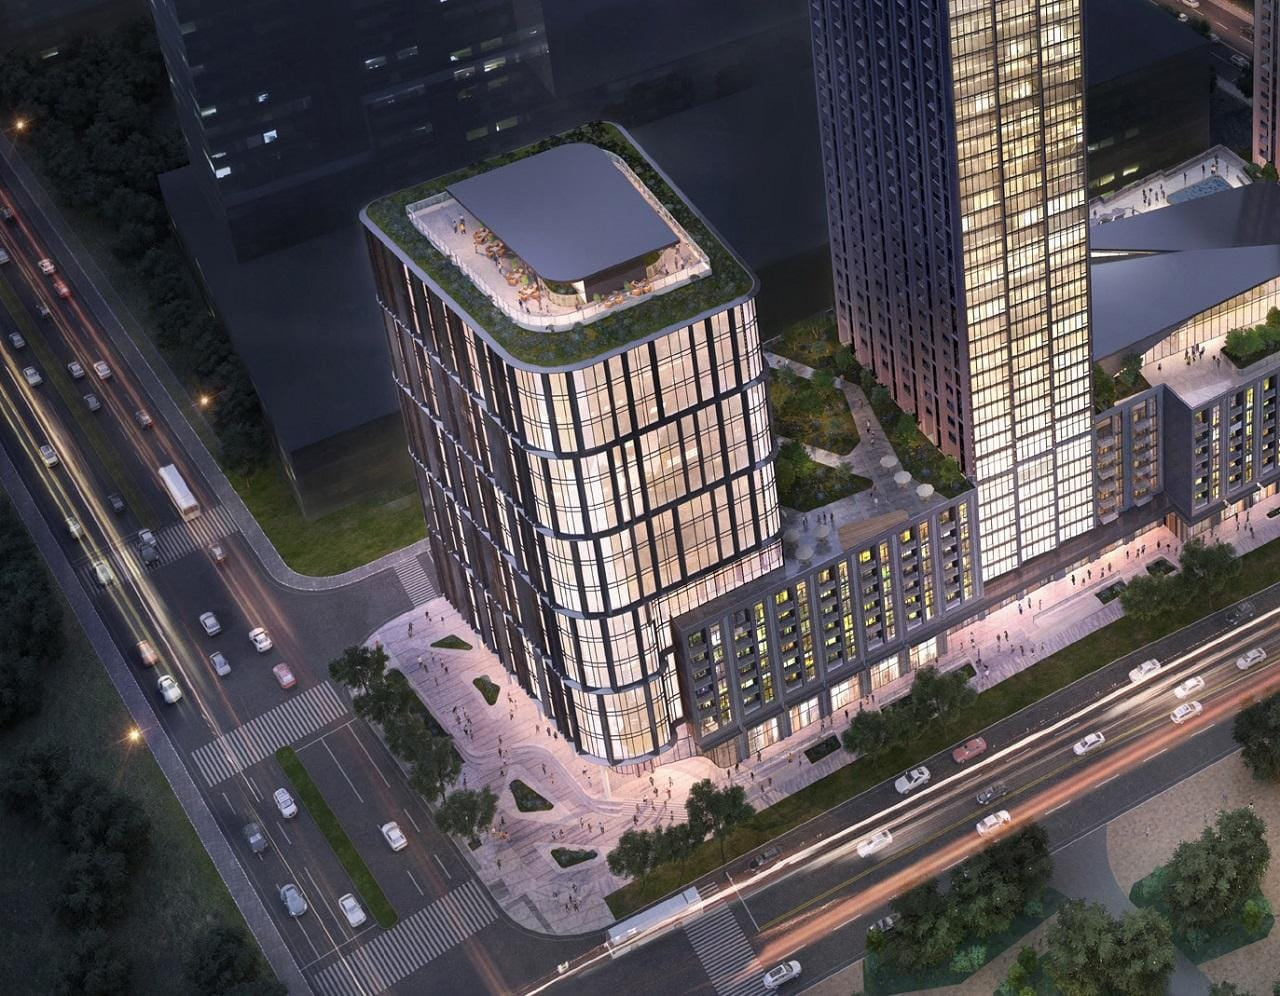 Exterior rendering of 7800 Jane Condos commercial building at night.